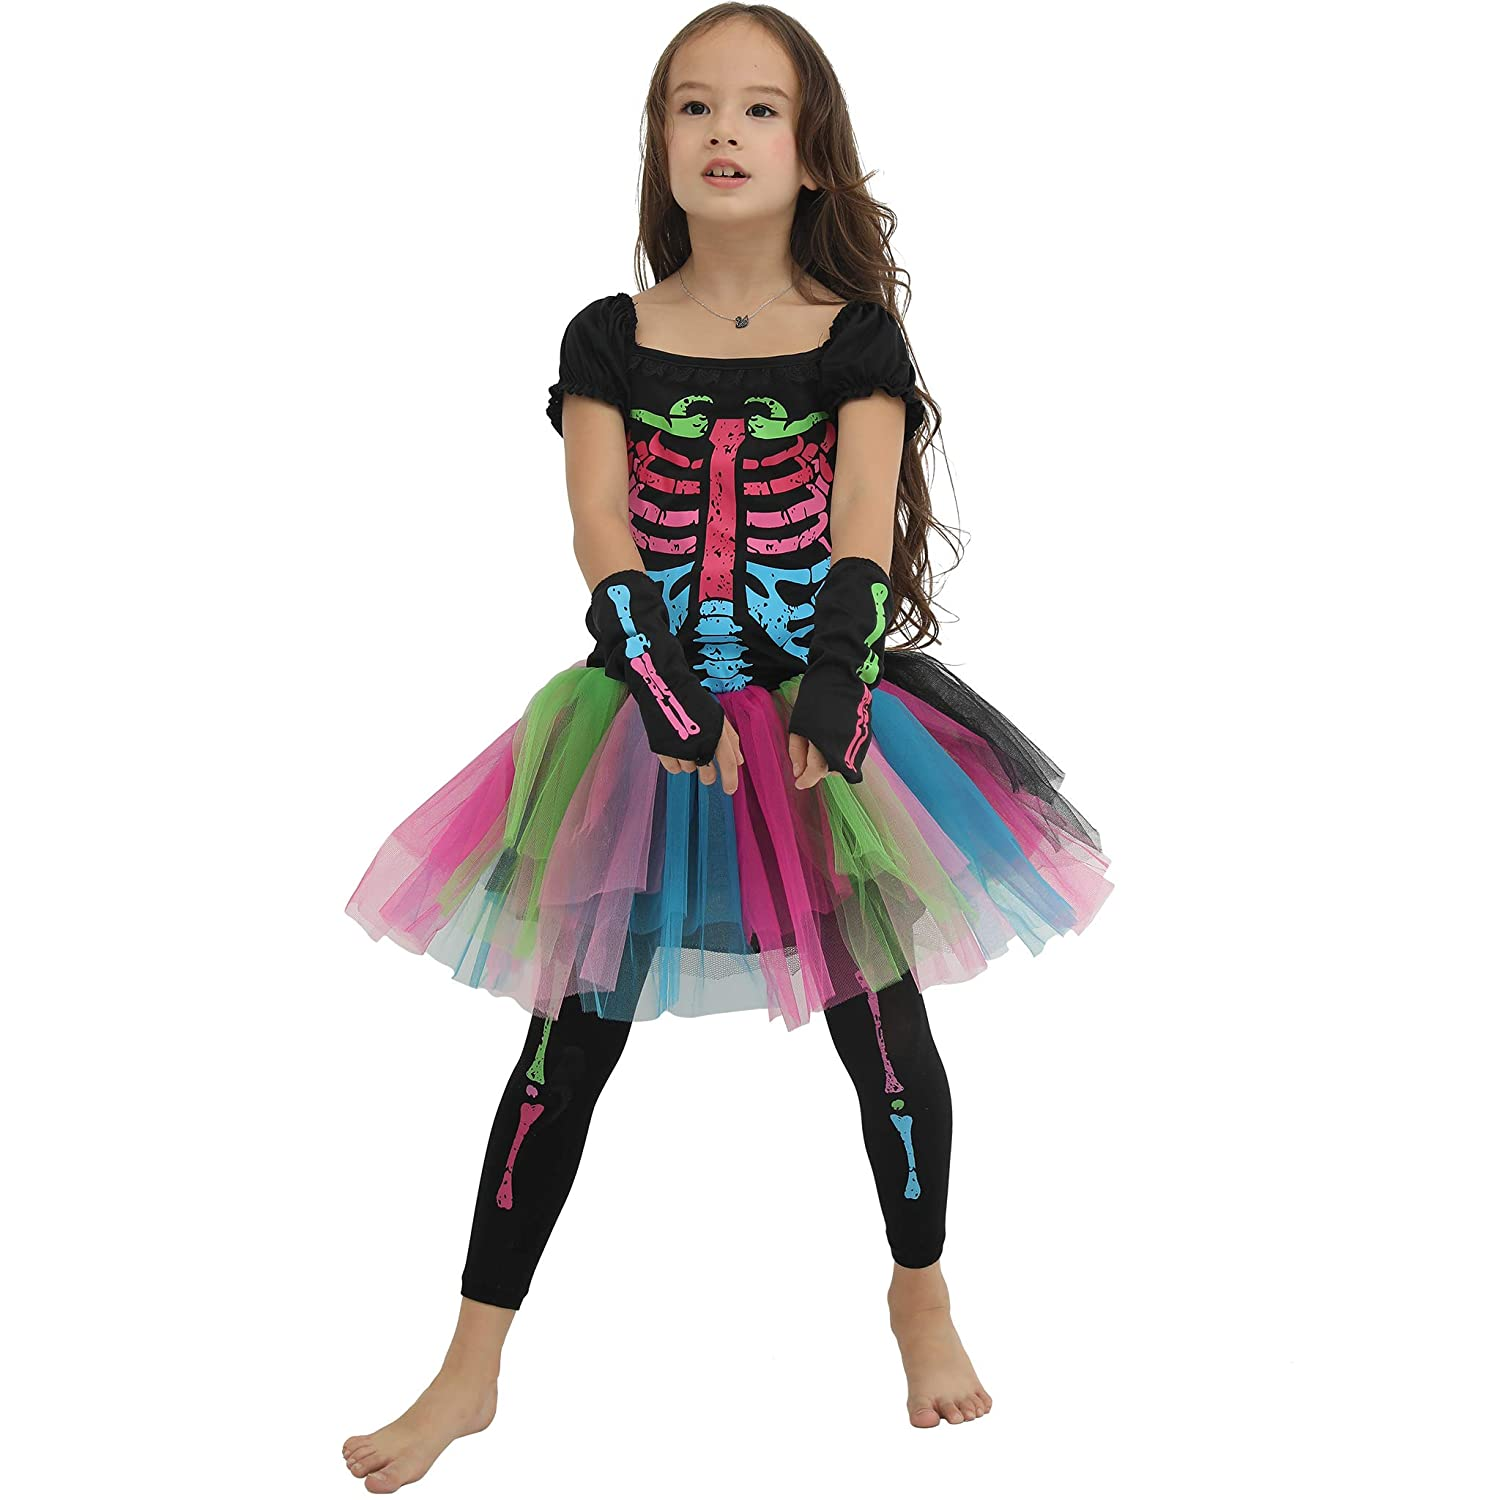 Halloween Zombie Costumes For Girls.Eraspooky Children S Halloween Skeleton Kids Zombie Costume Scary For Boy Dress Up Girls Jumpsuit Funny Cosplay Party